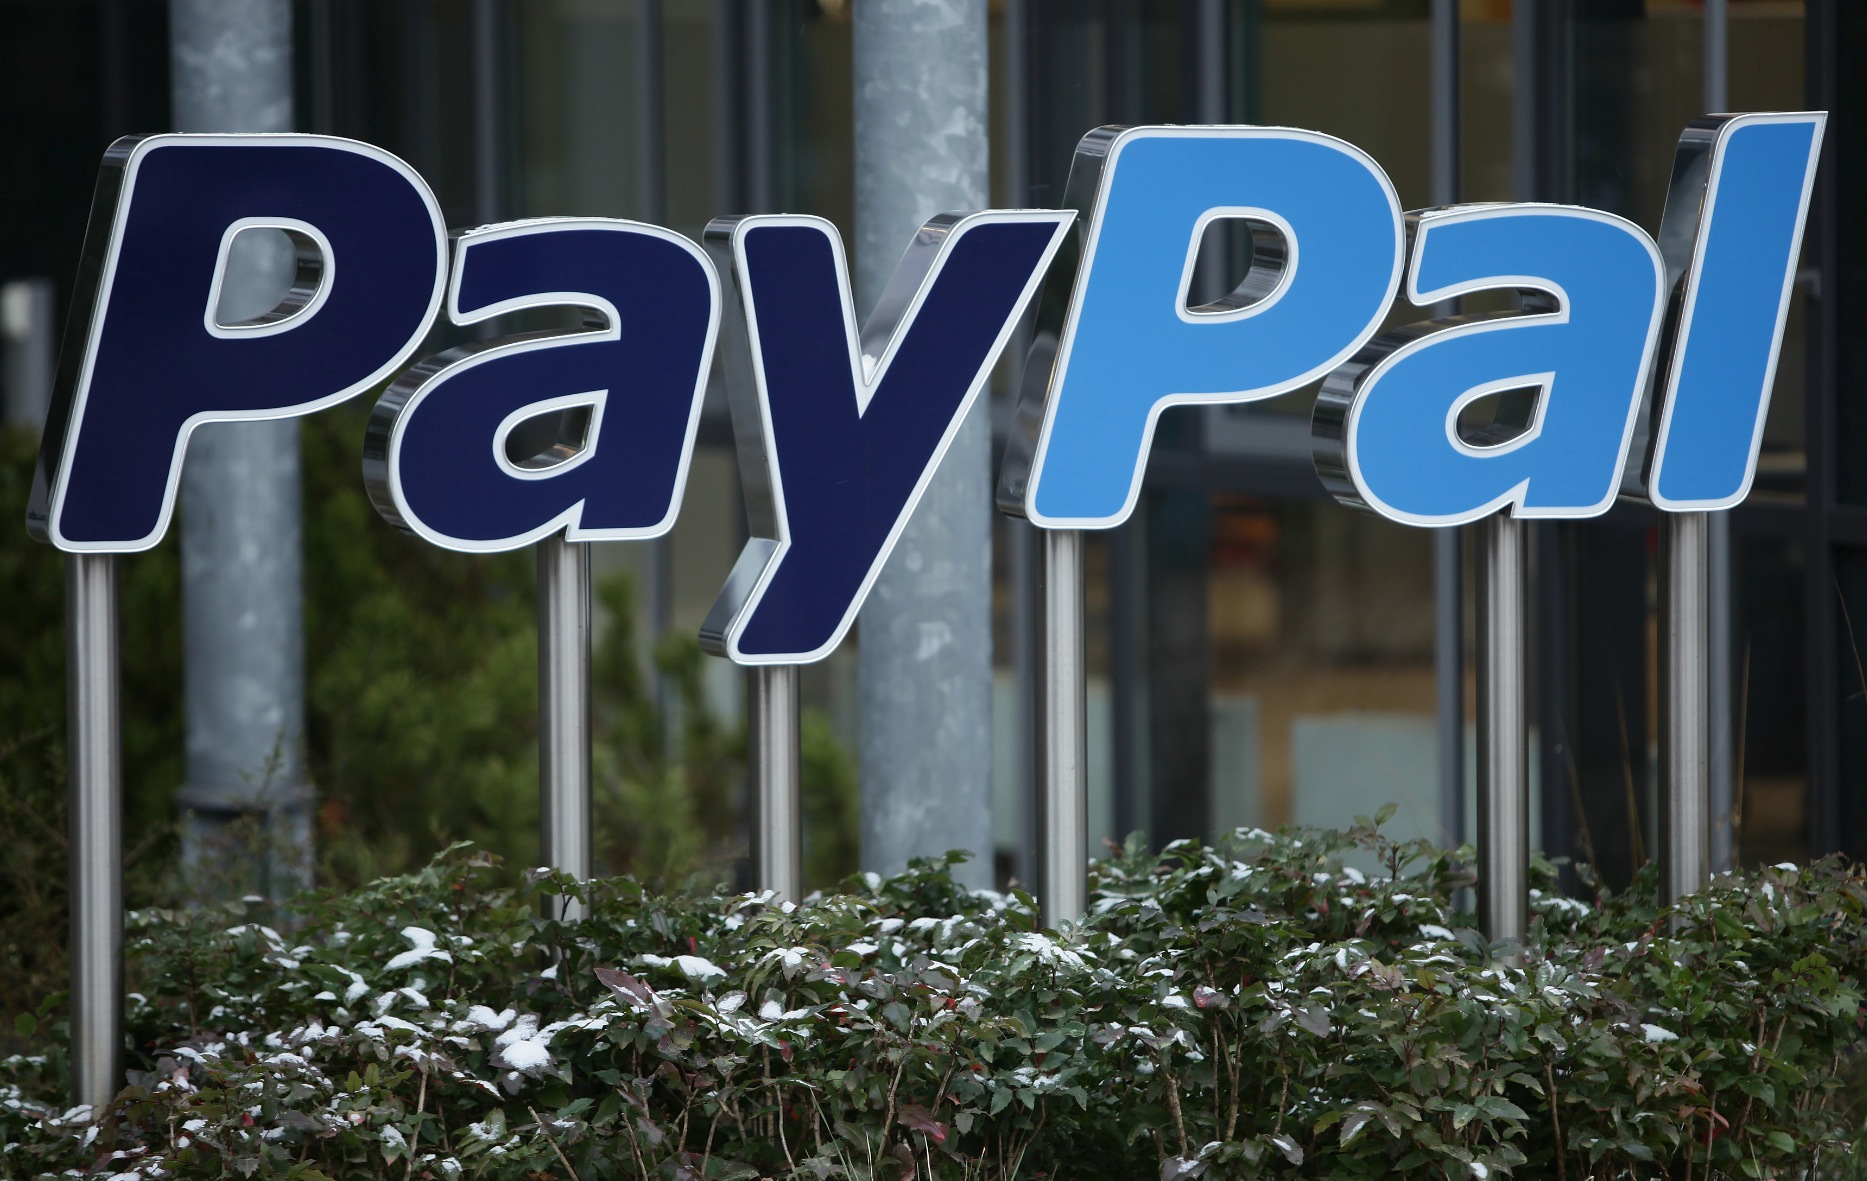 eBay's PayPal spends $15M to 'consolidate' its product groups, cutting 325 employees ...